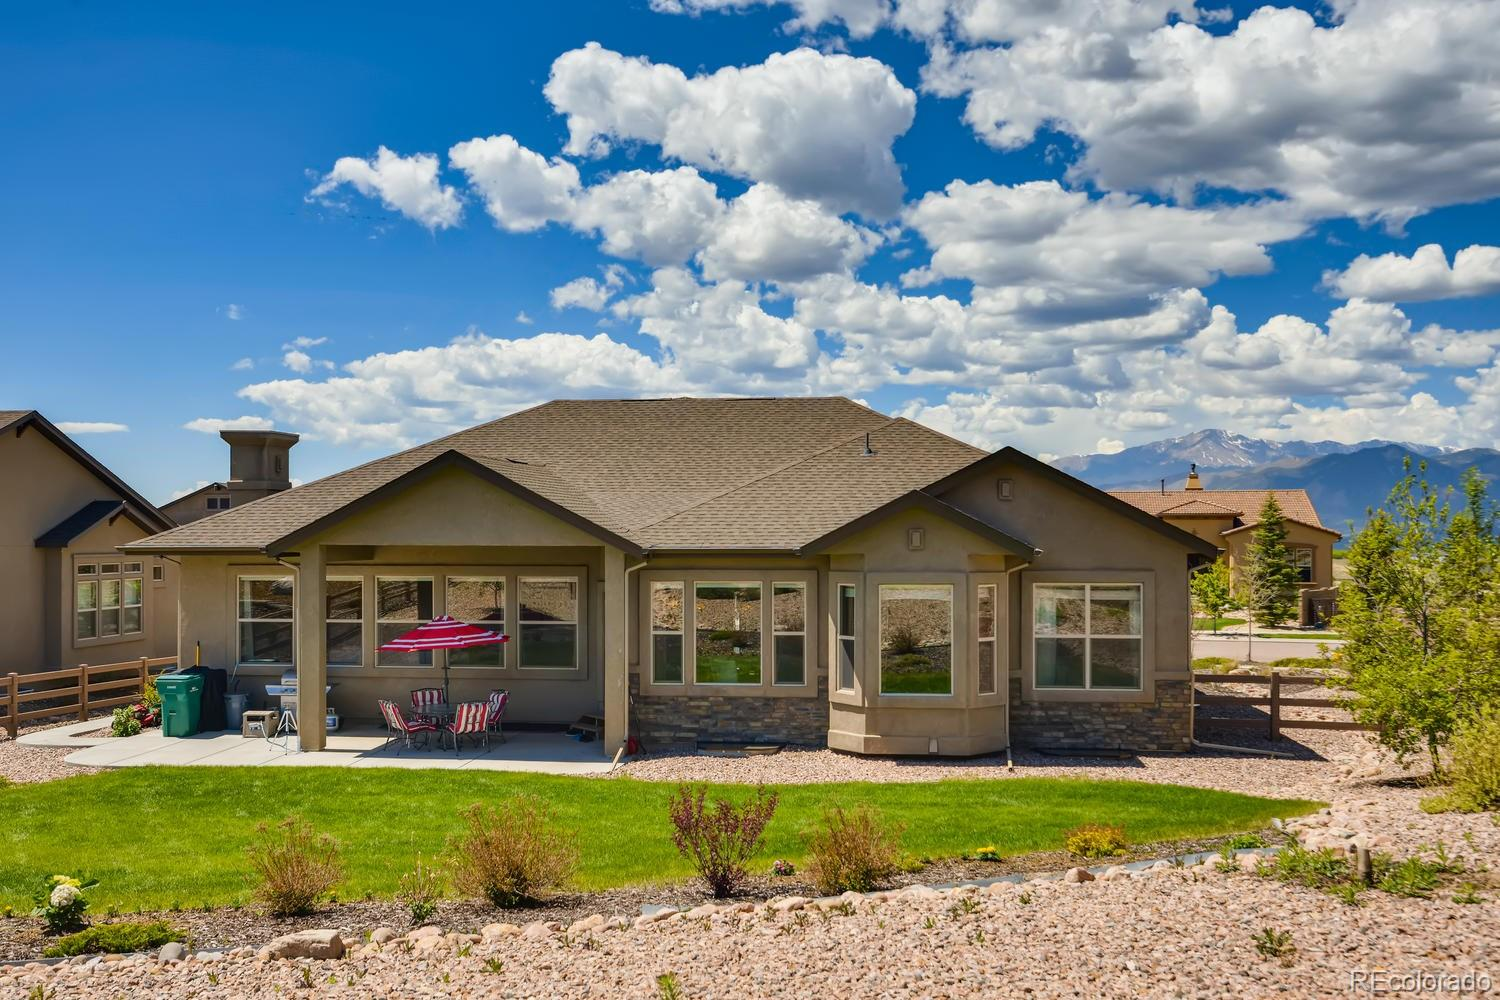 MLS# 5599006 - 27 - 1908 Turnbull Drive, Colorado Springs, CO 80921